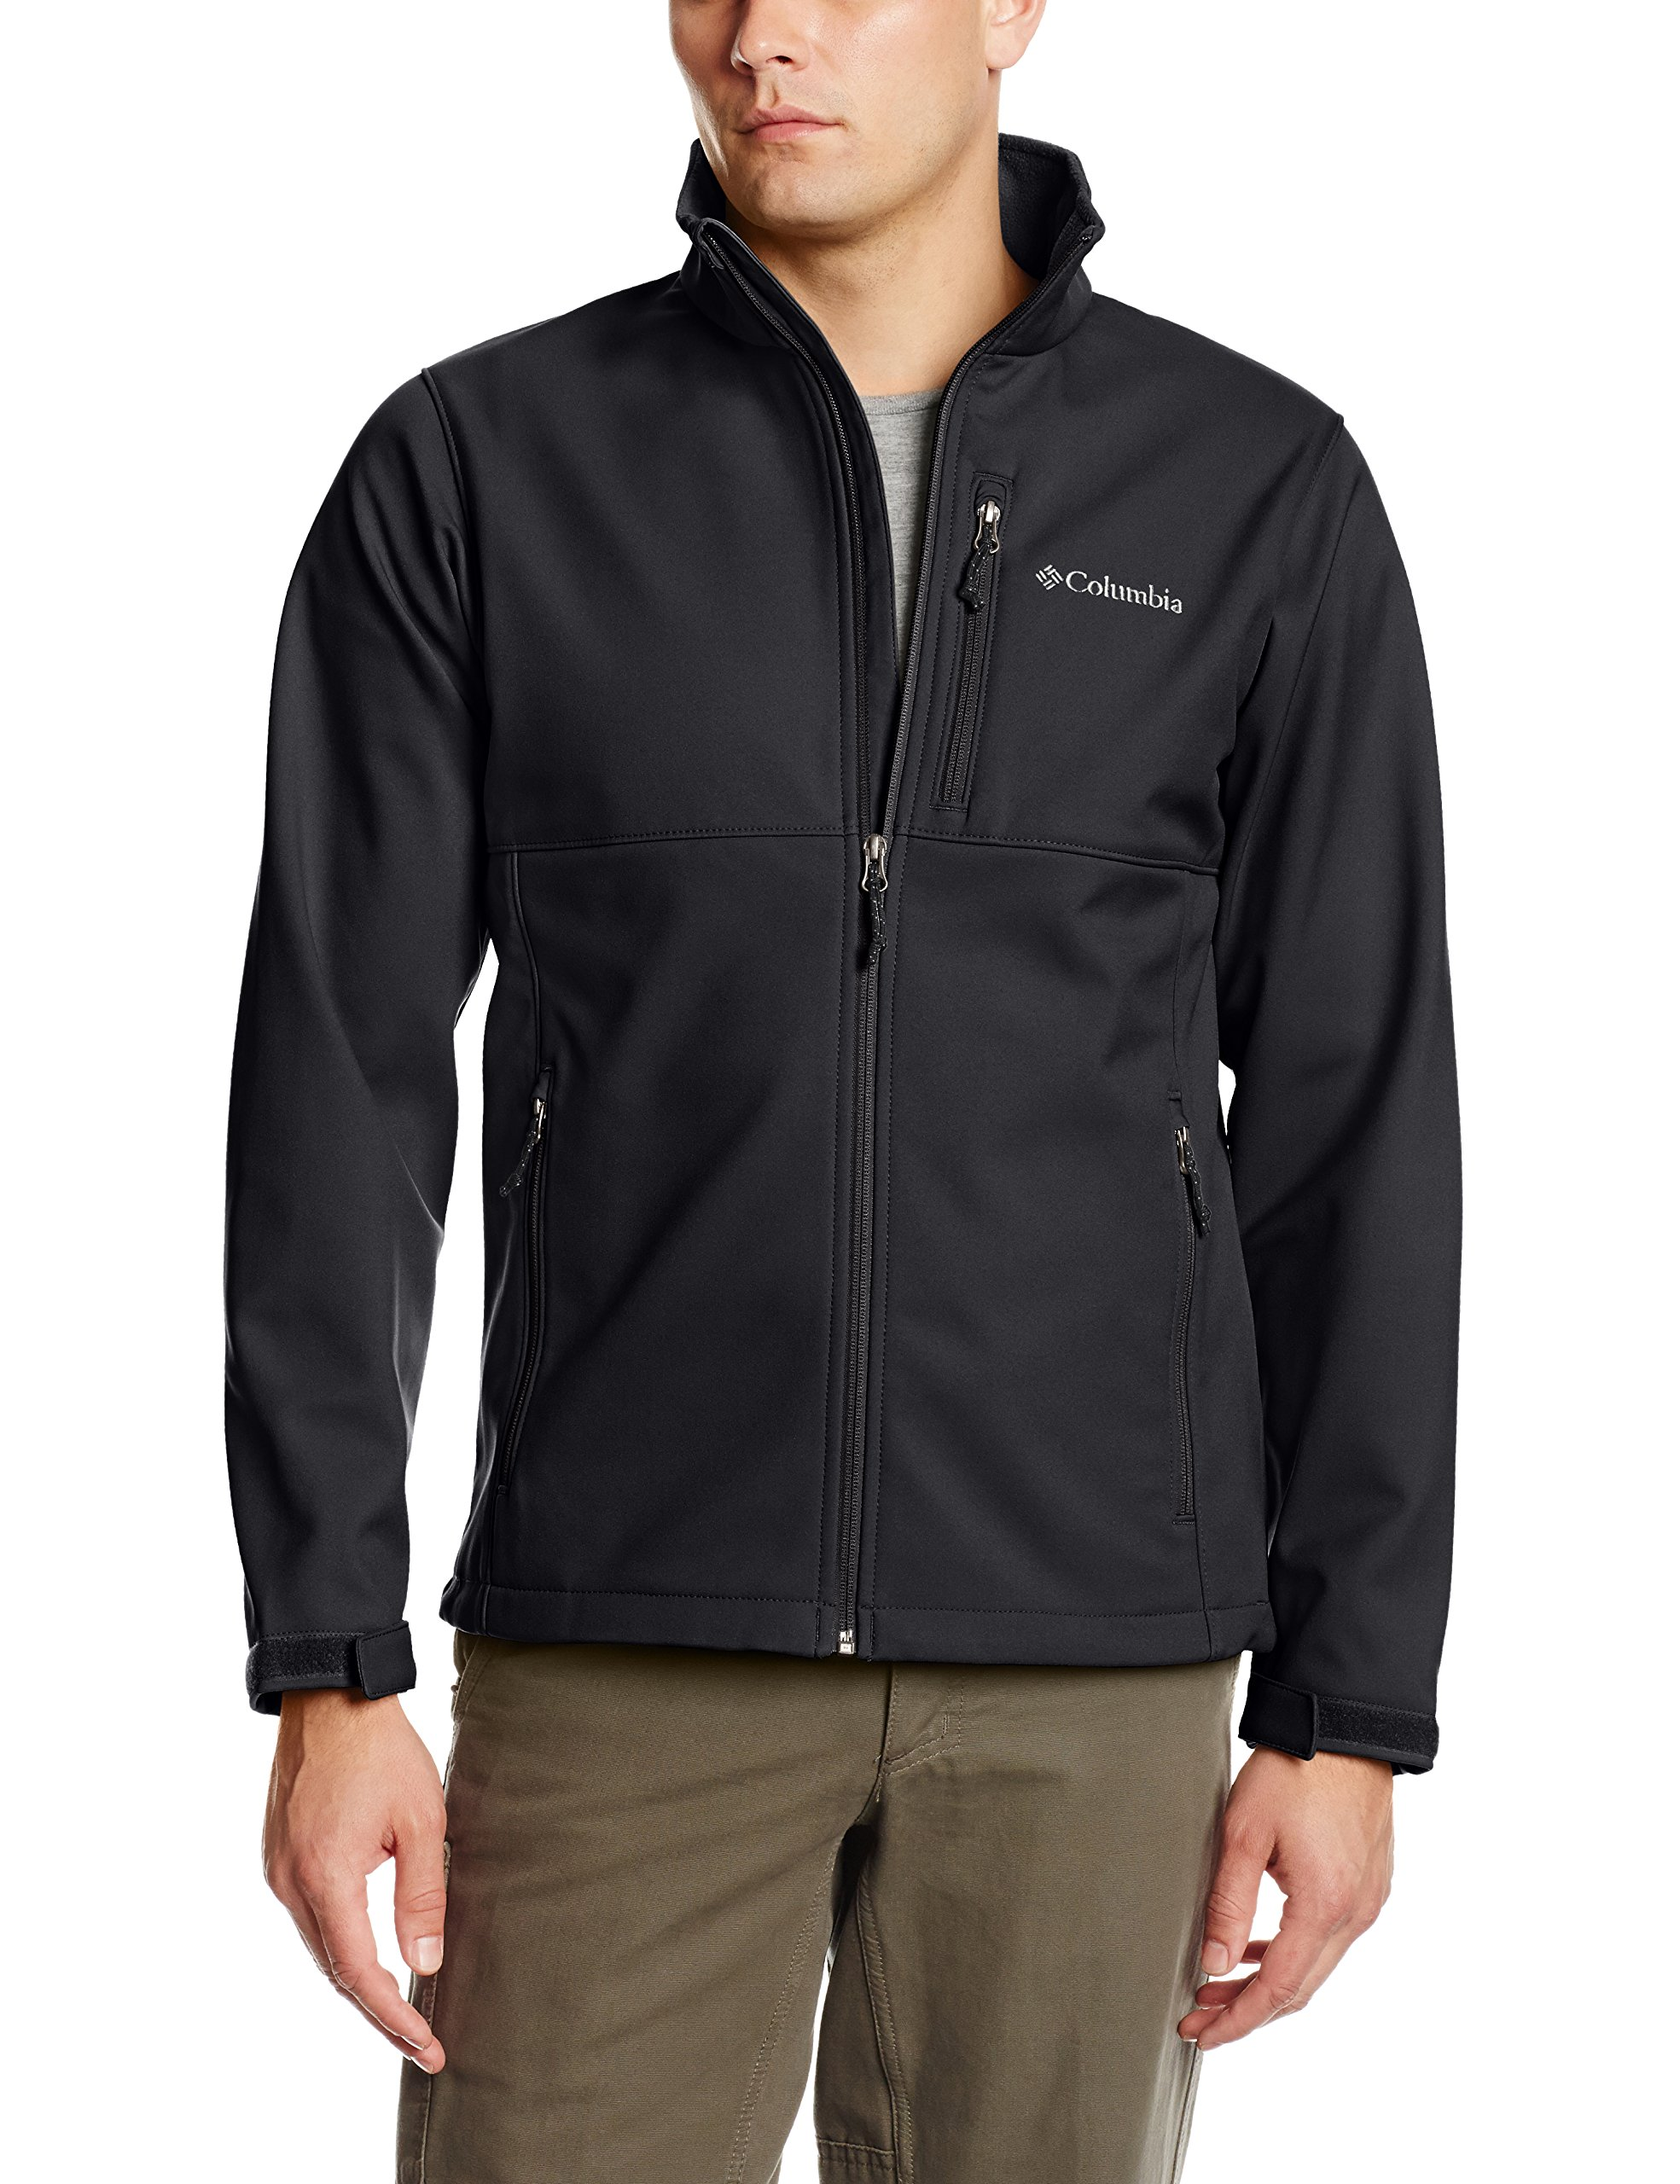 Columbia Men's Big & Tall Ascender Softshell Jacket, Black, 2X by Columbia